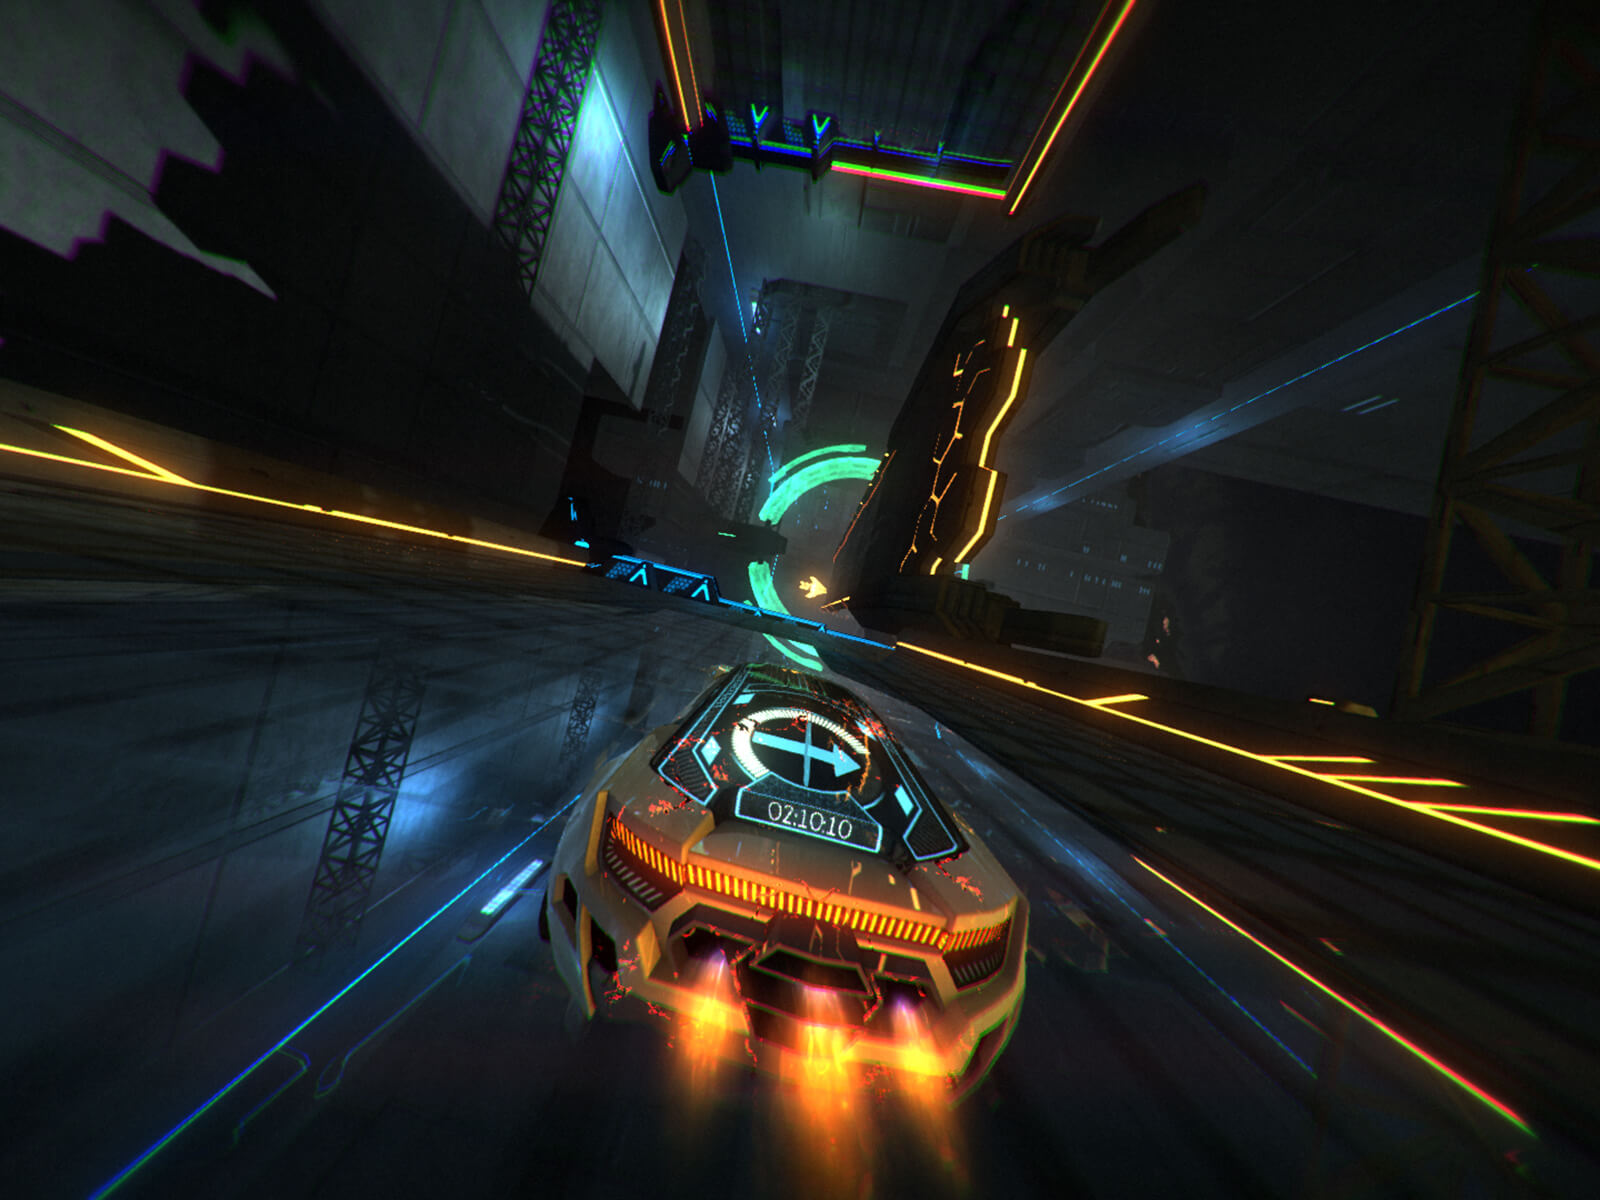 Screenshot from Refract Studios' Distance v1.0 of a neon-trimmed car racing through a darkened landscape